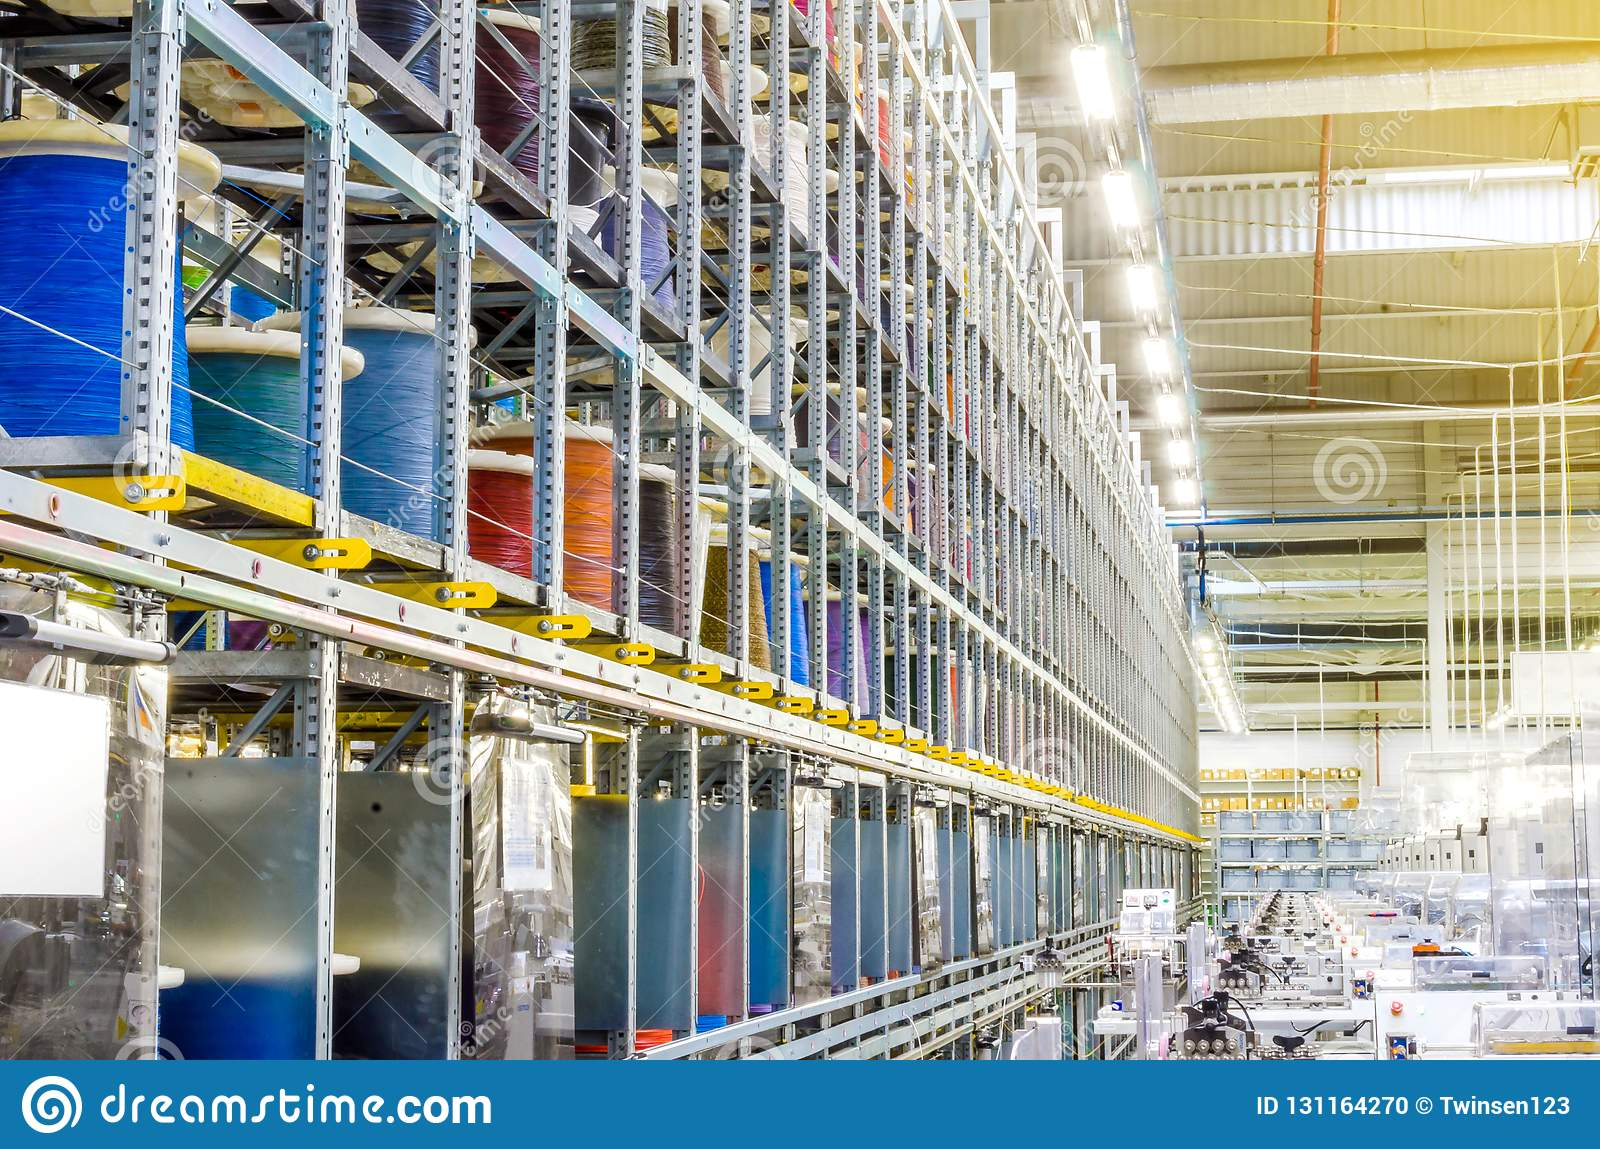 Large Coils With Colored Electrical Wires On Huge Shelves In ... on interior shelves, wood shelves, piping shelves, three shelves, plumbing shelves, concrete shelves, kitchen shelves, frame shelves, radiator shelves, parts shelves, security shelves, drywall shelves, blue shelves, welding shelves,